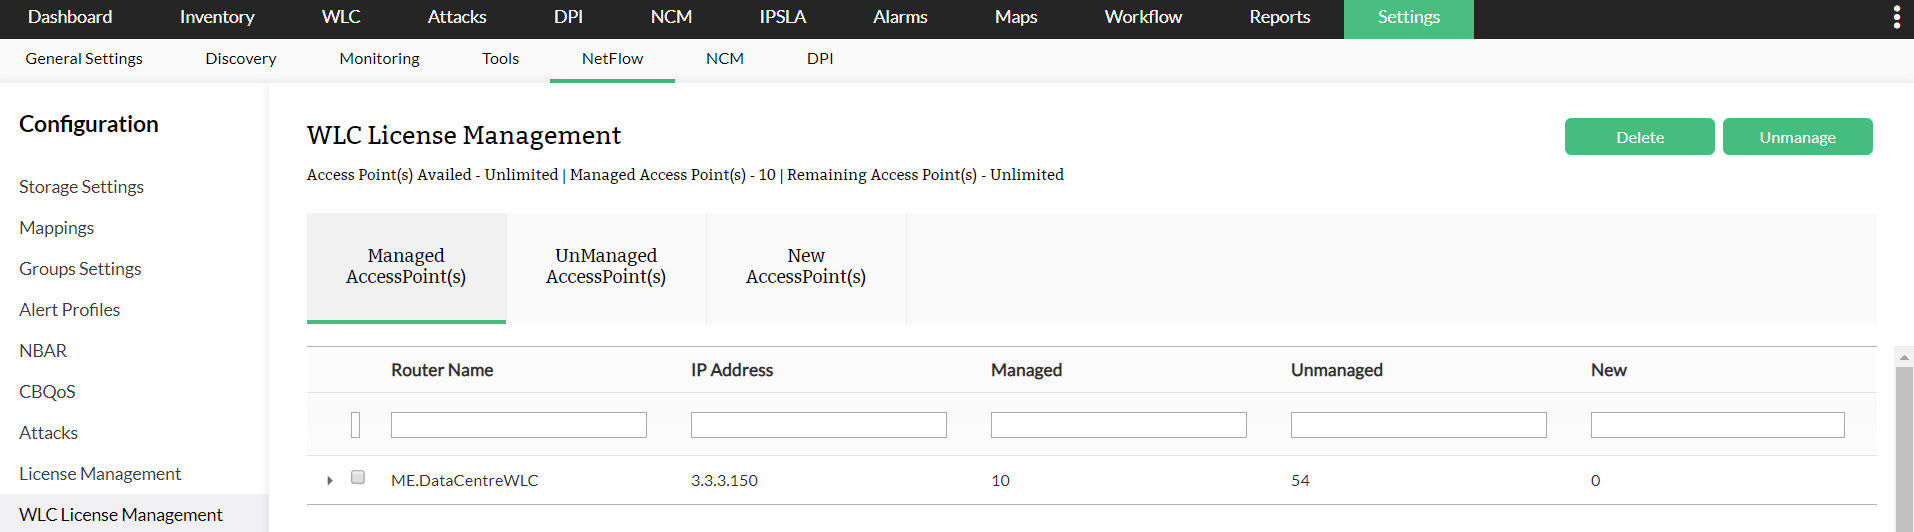 Managing a Controller/Access Point